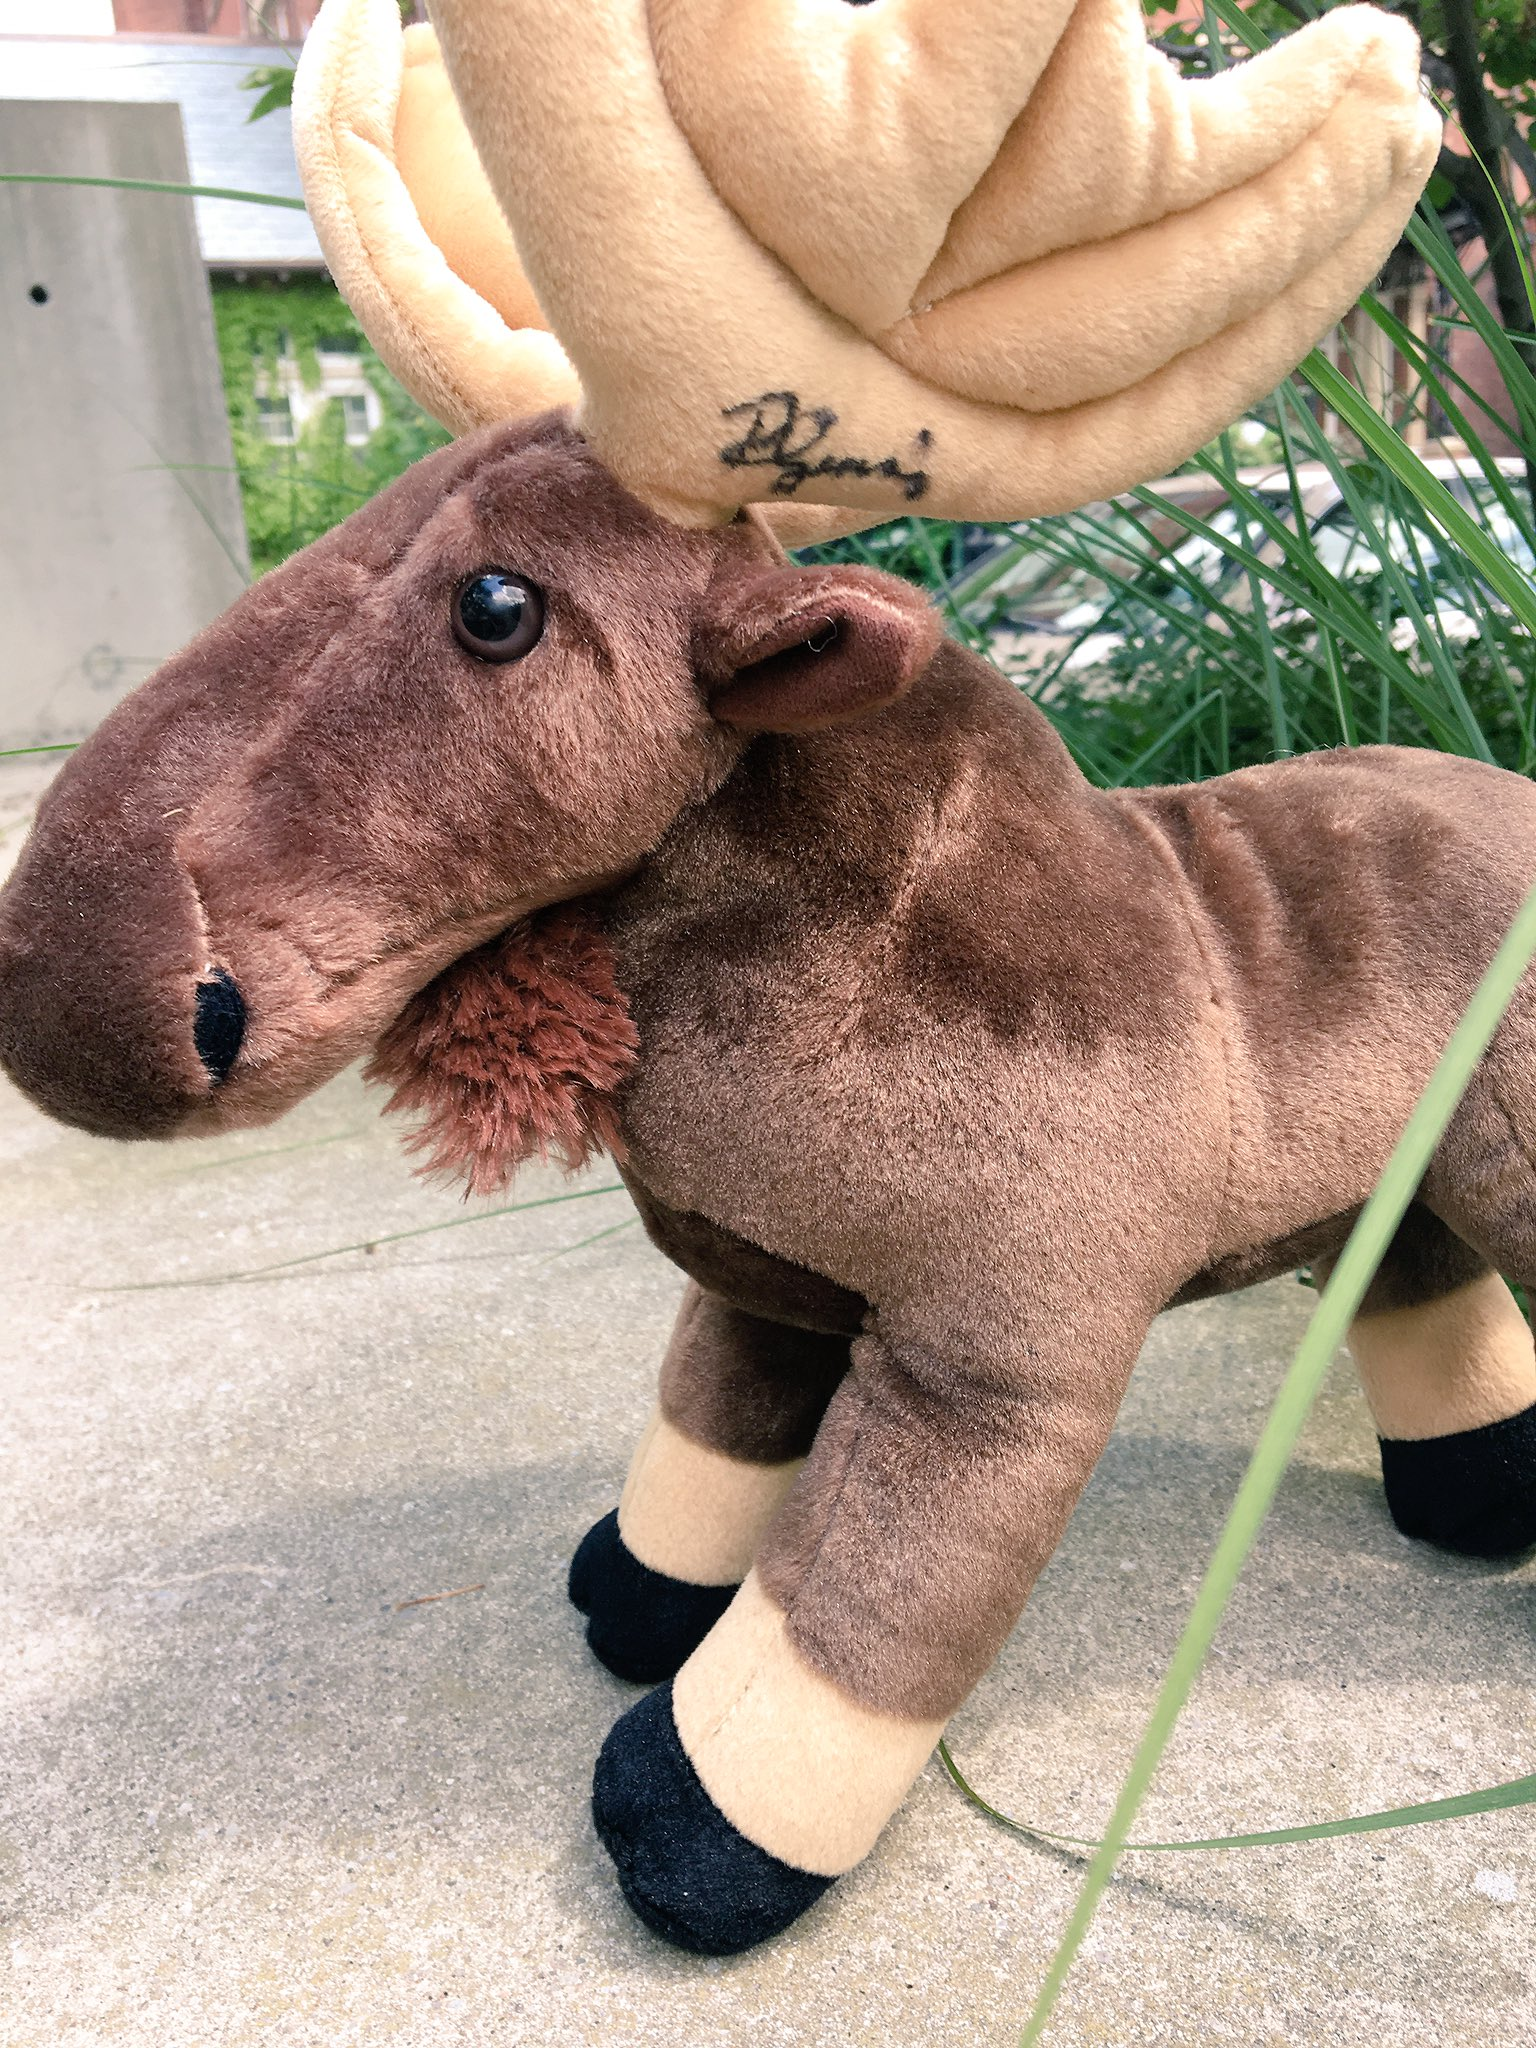 Dear Toronto. I've signed & left moosey here. He's yours if you're quick. https://t.co/oETw1dLja3